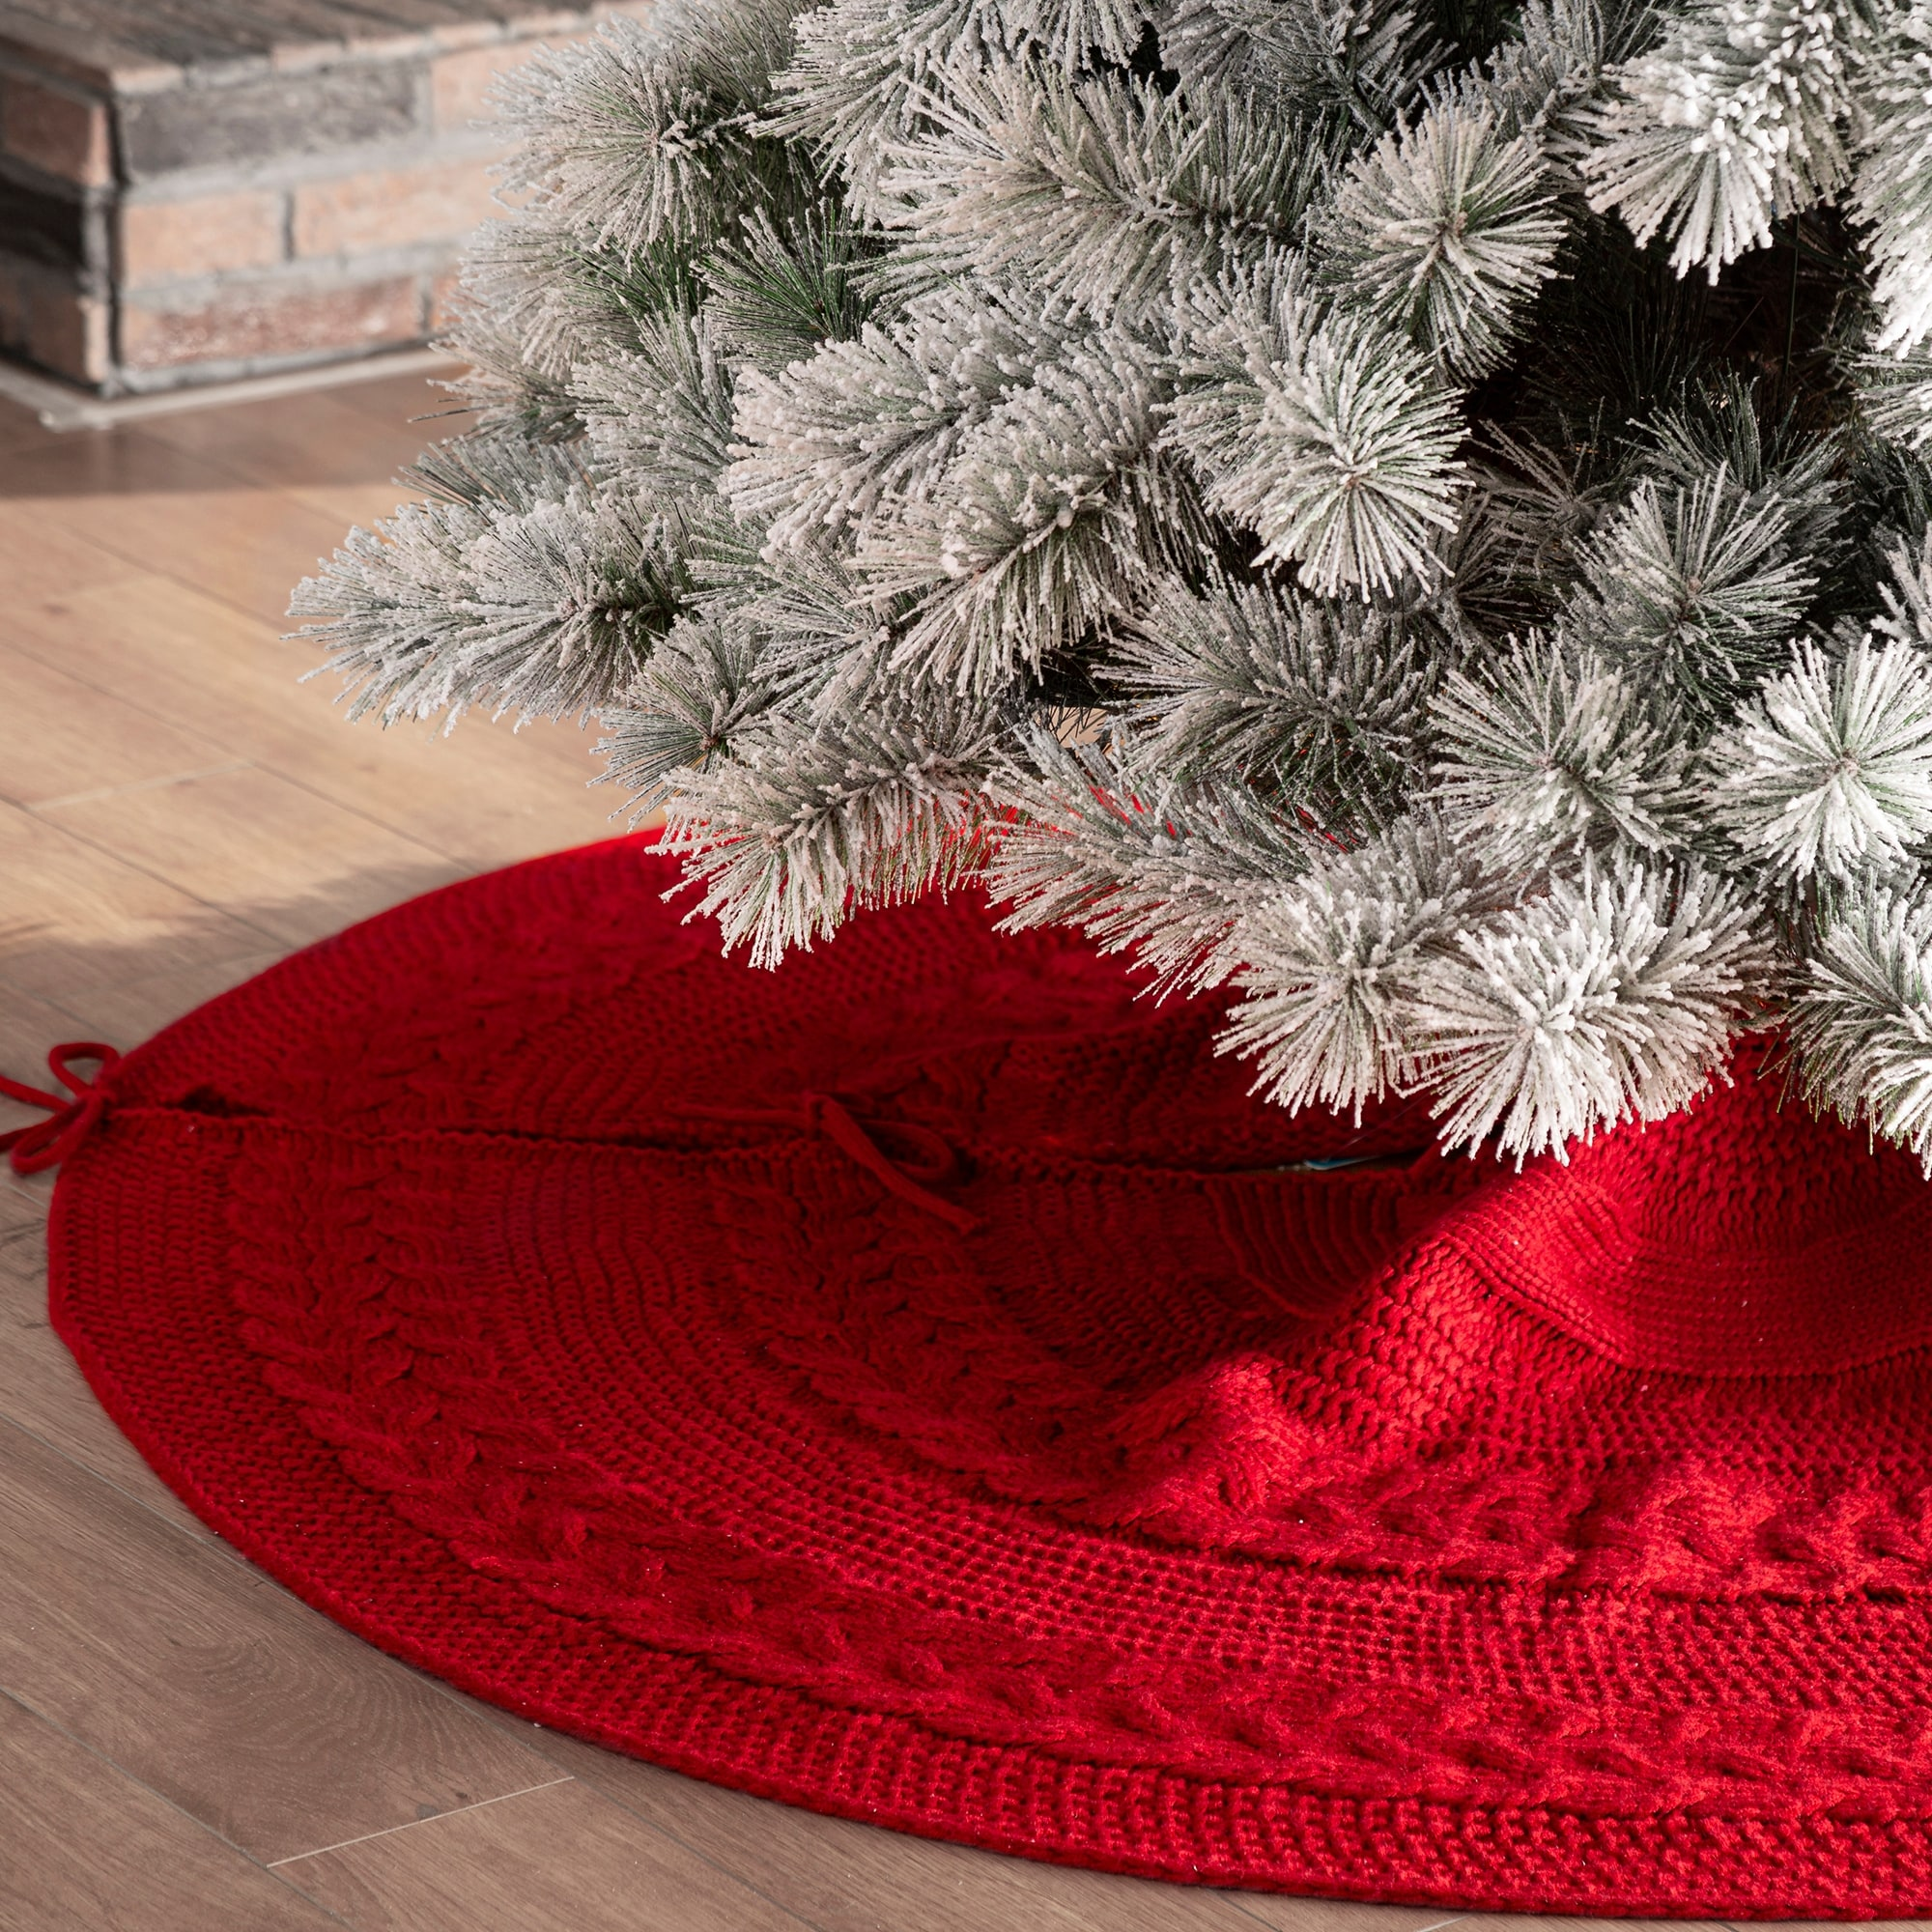 Meriwoods Fair Isle Knit Tree Skirt 48 Inch Chunky Knitted Tree Collar For Country Rustic Christmas Decorations Neutral Gray Cream White Home Kitchen Seasonal Decor